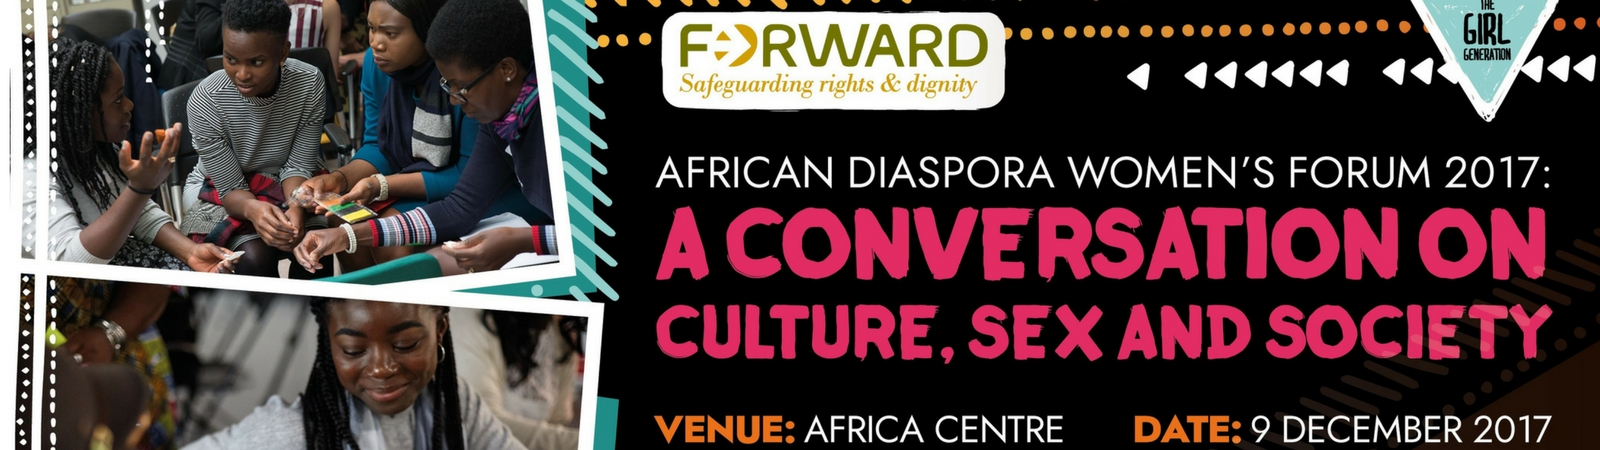 9th December - African Diaspora Women's Forum 20 17: A Conversation on Culture, Sex and Society. Africa Centre, London, SE1 0BLTickets: